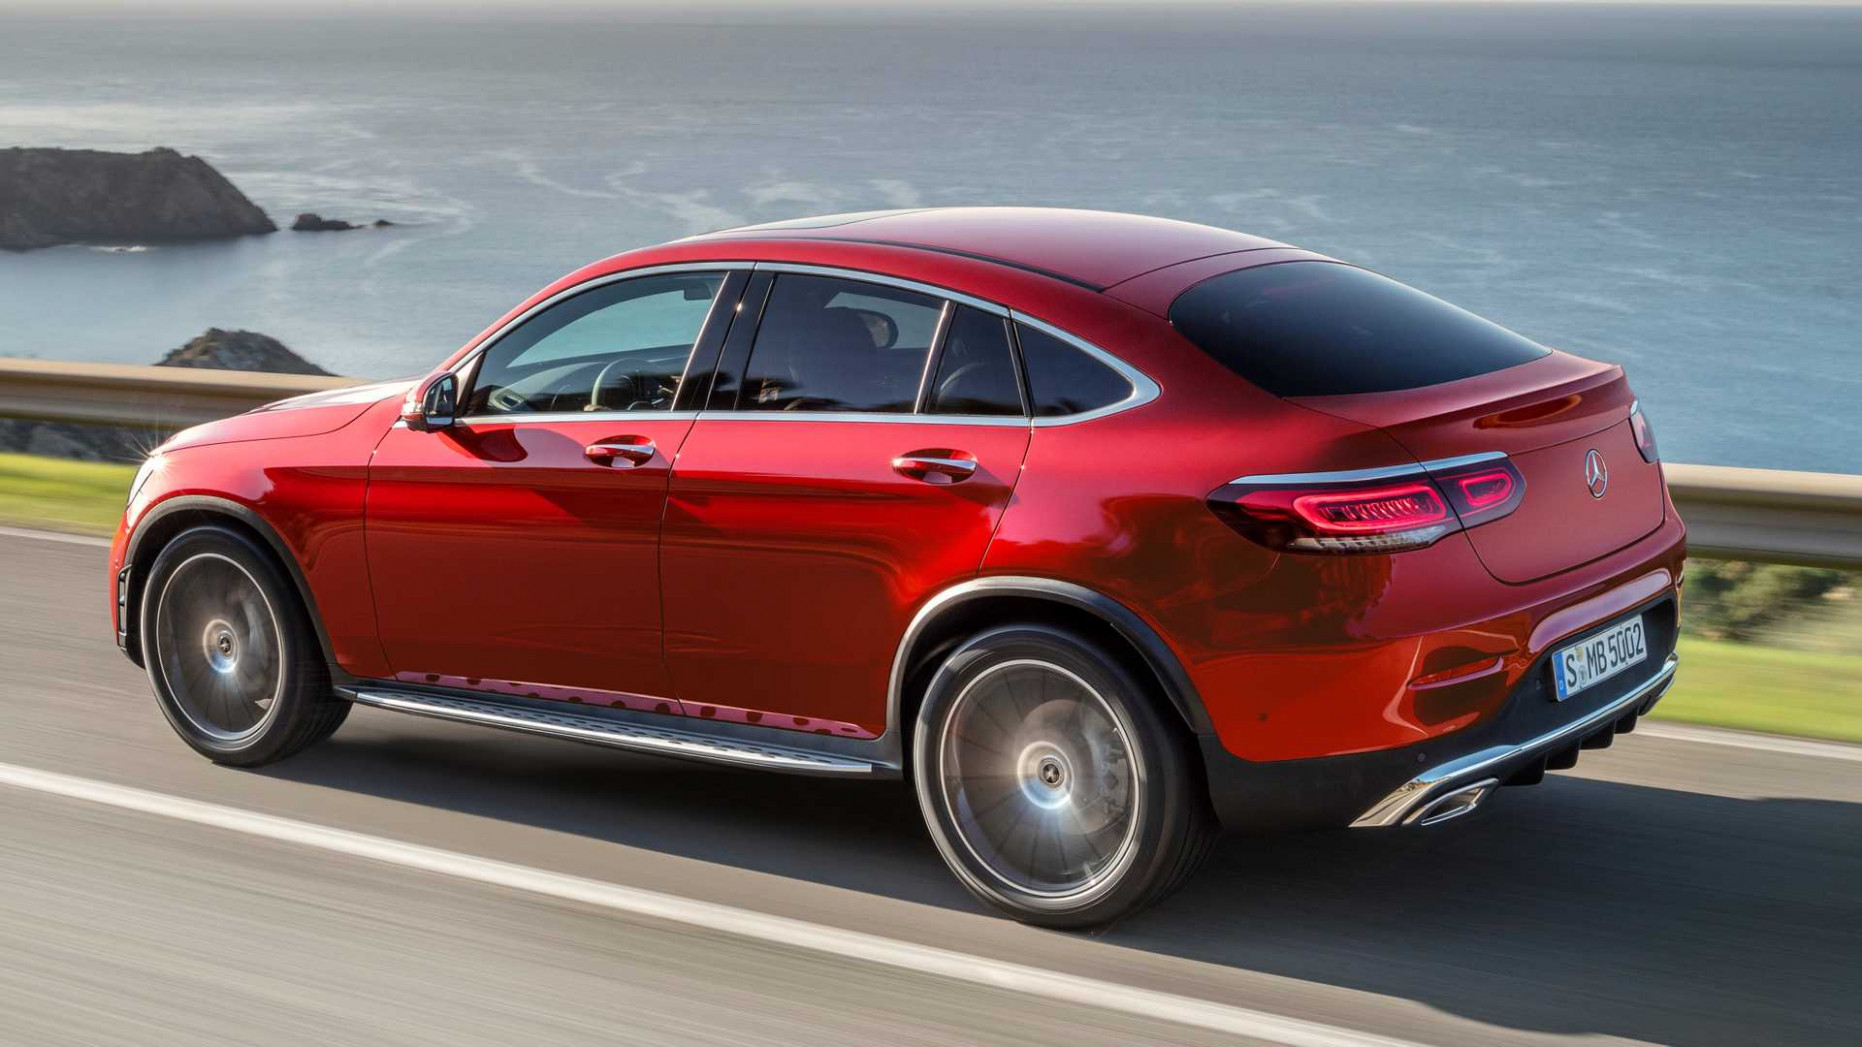 11 Mercedes-Benz GLC Coupe Gets Refreshed Face, More Power [UPDATE]